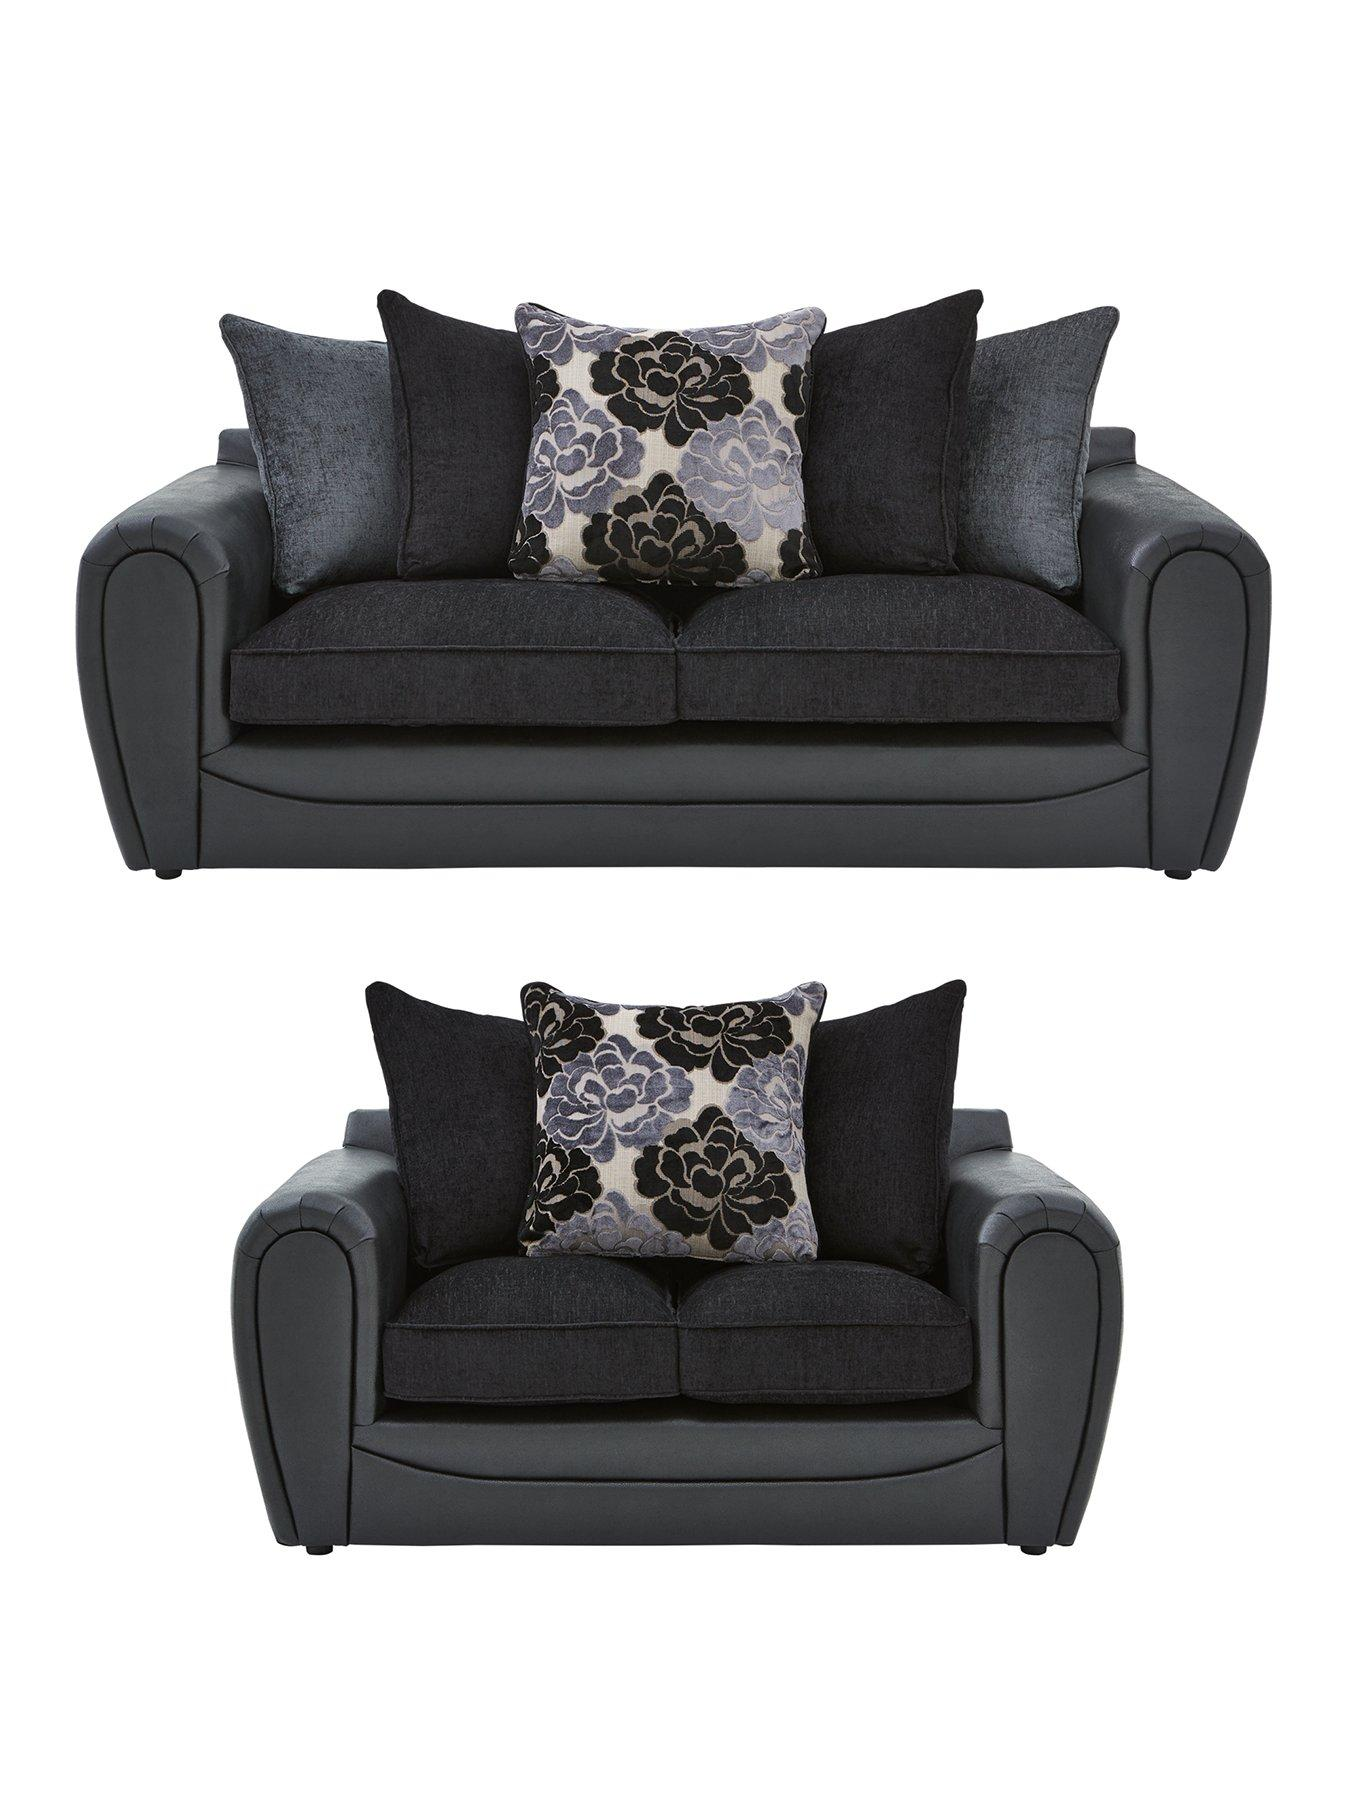 Monico 3 Seater 2 Seater Scatter Back Sofa Set Buy and SAVE